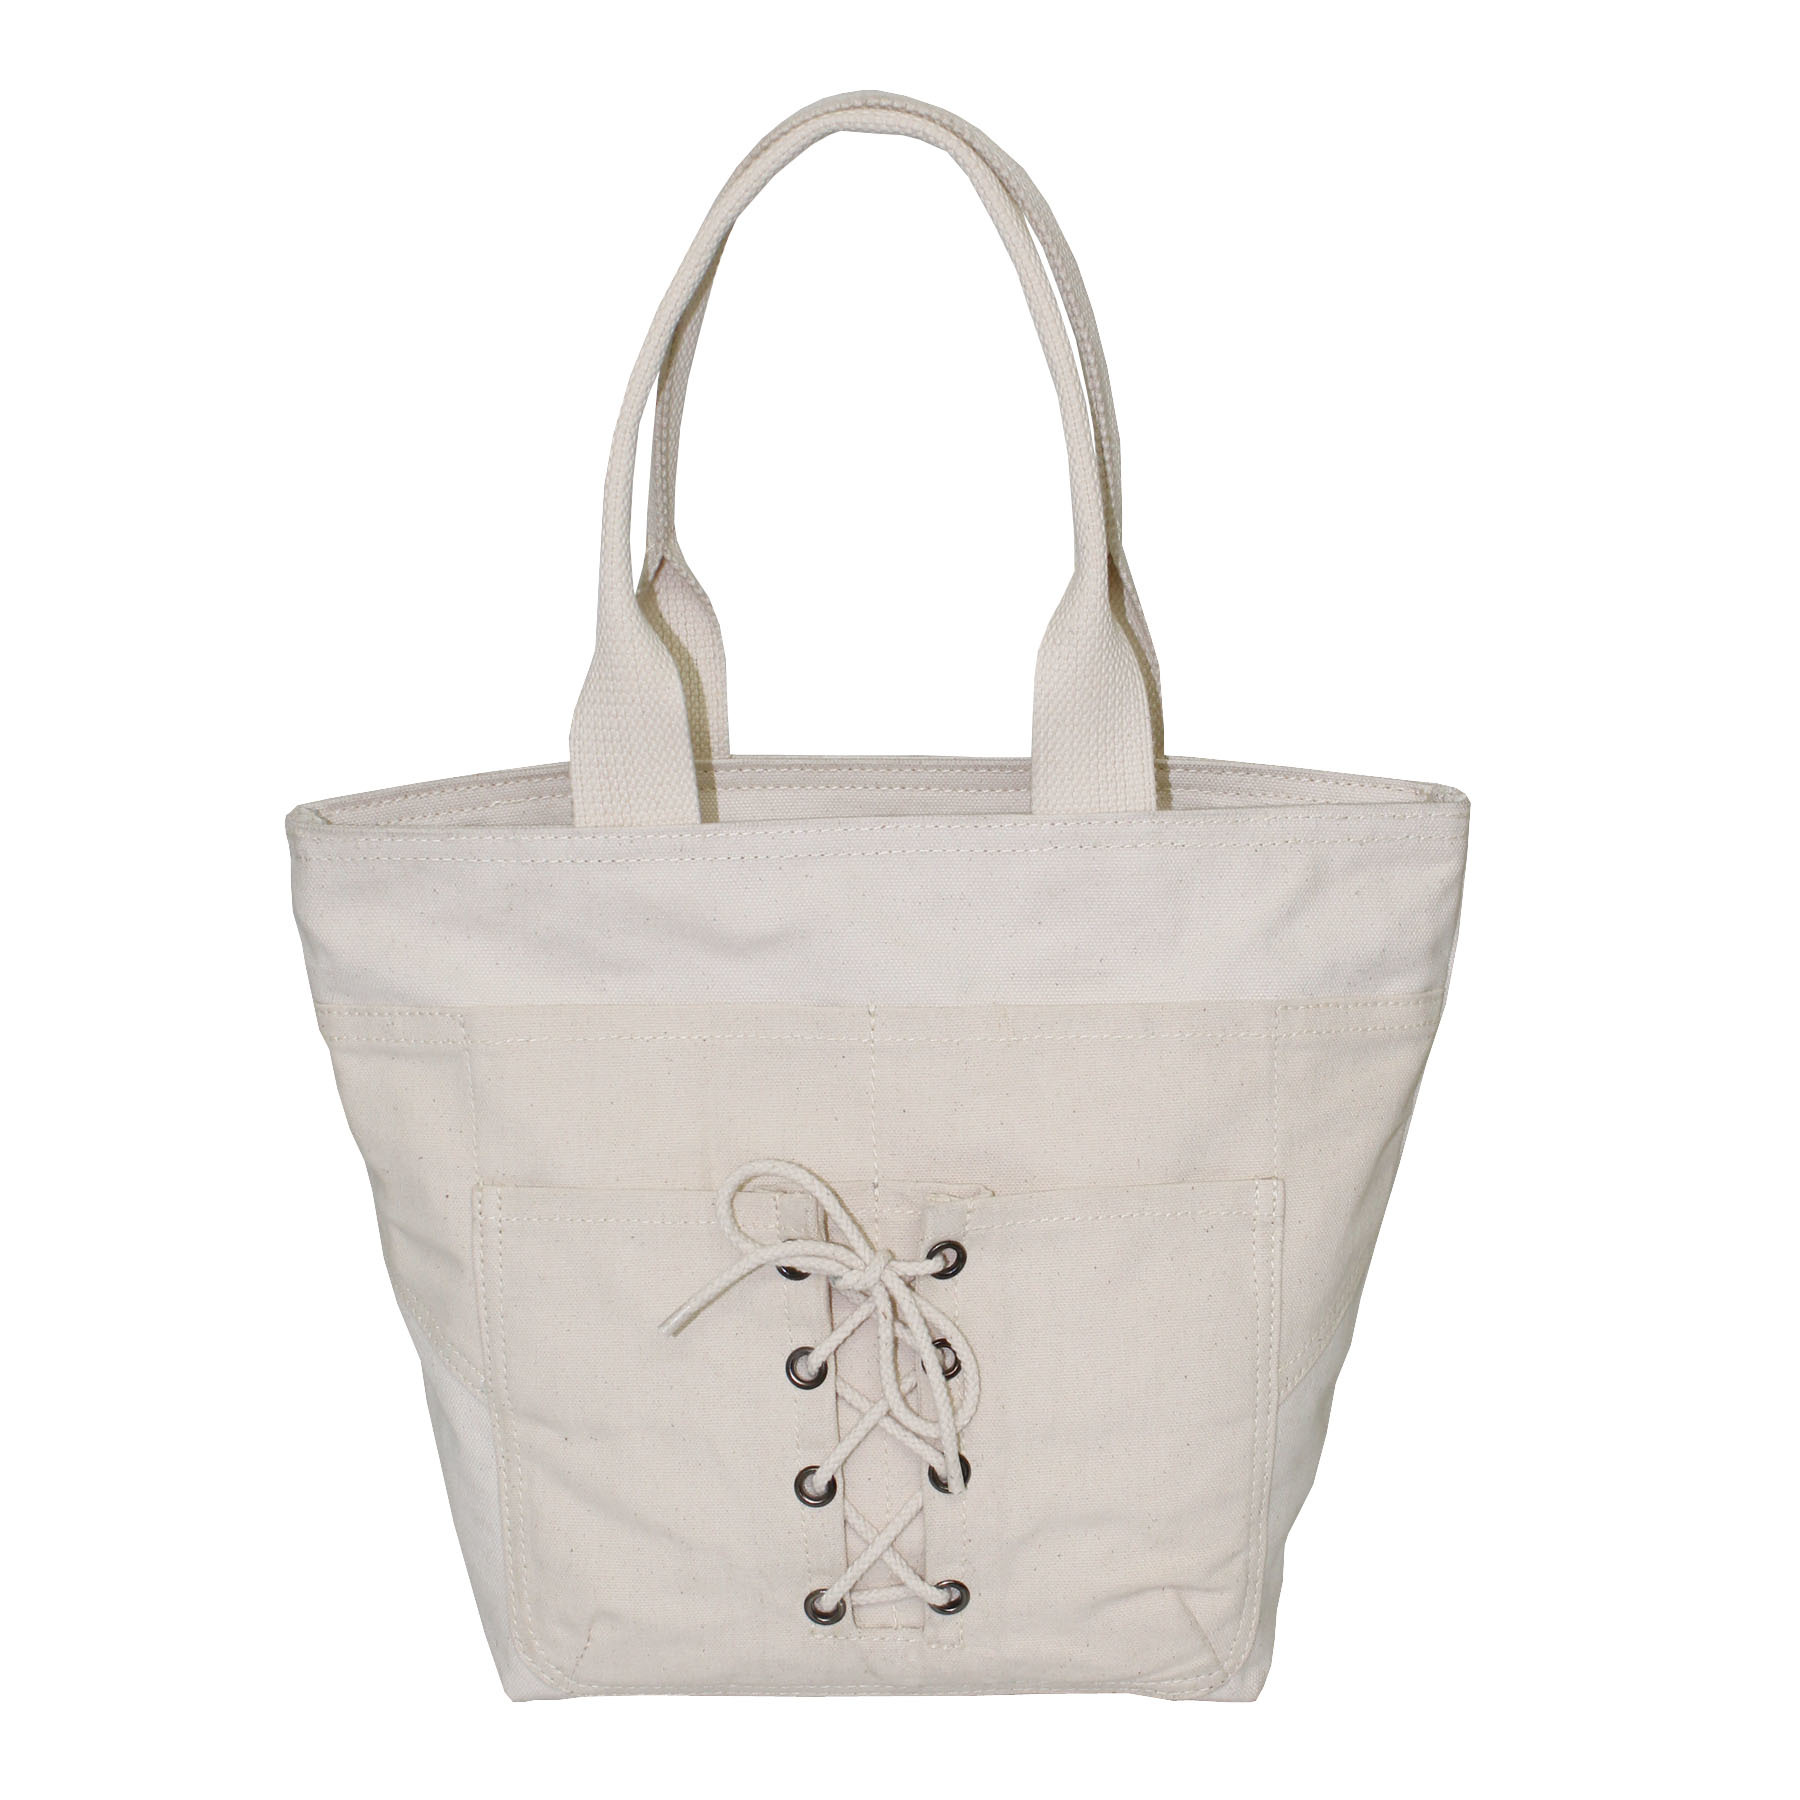 20 Oz Natural Canvas Tote Bag With Open Hanging Pocket